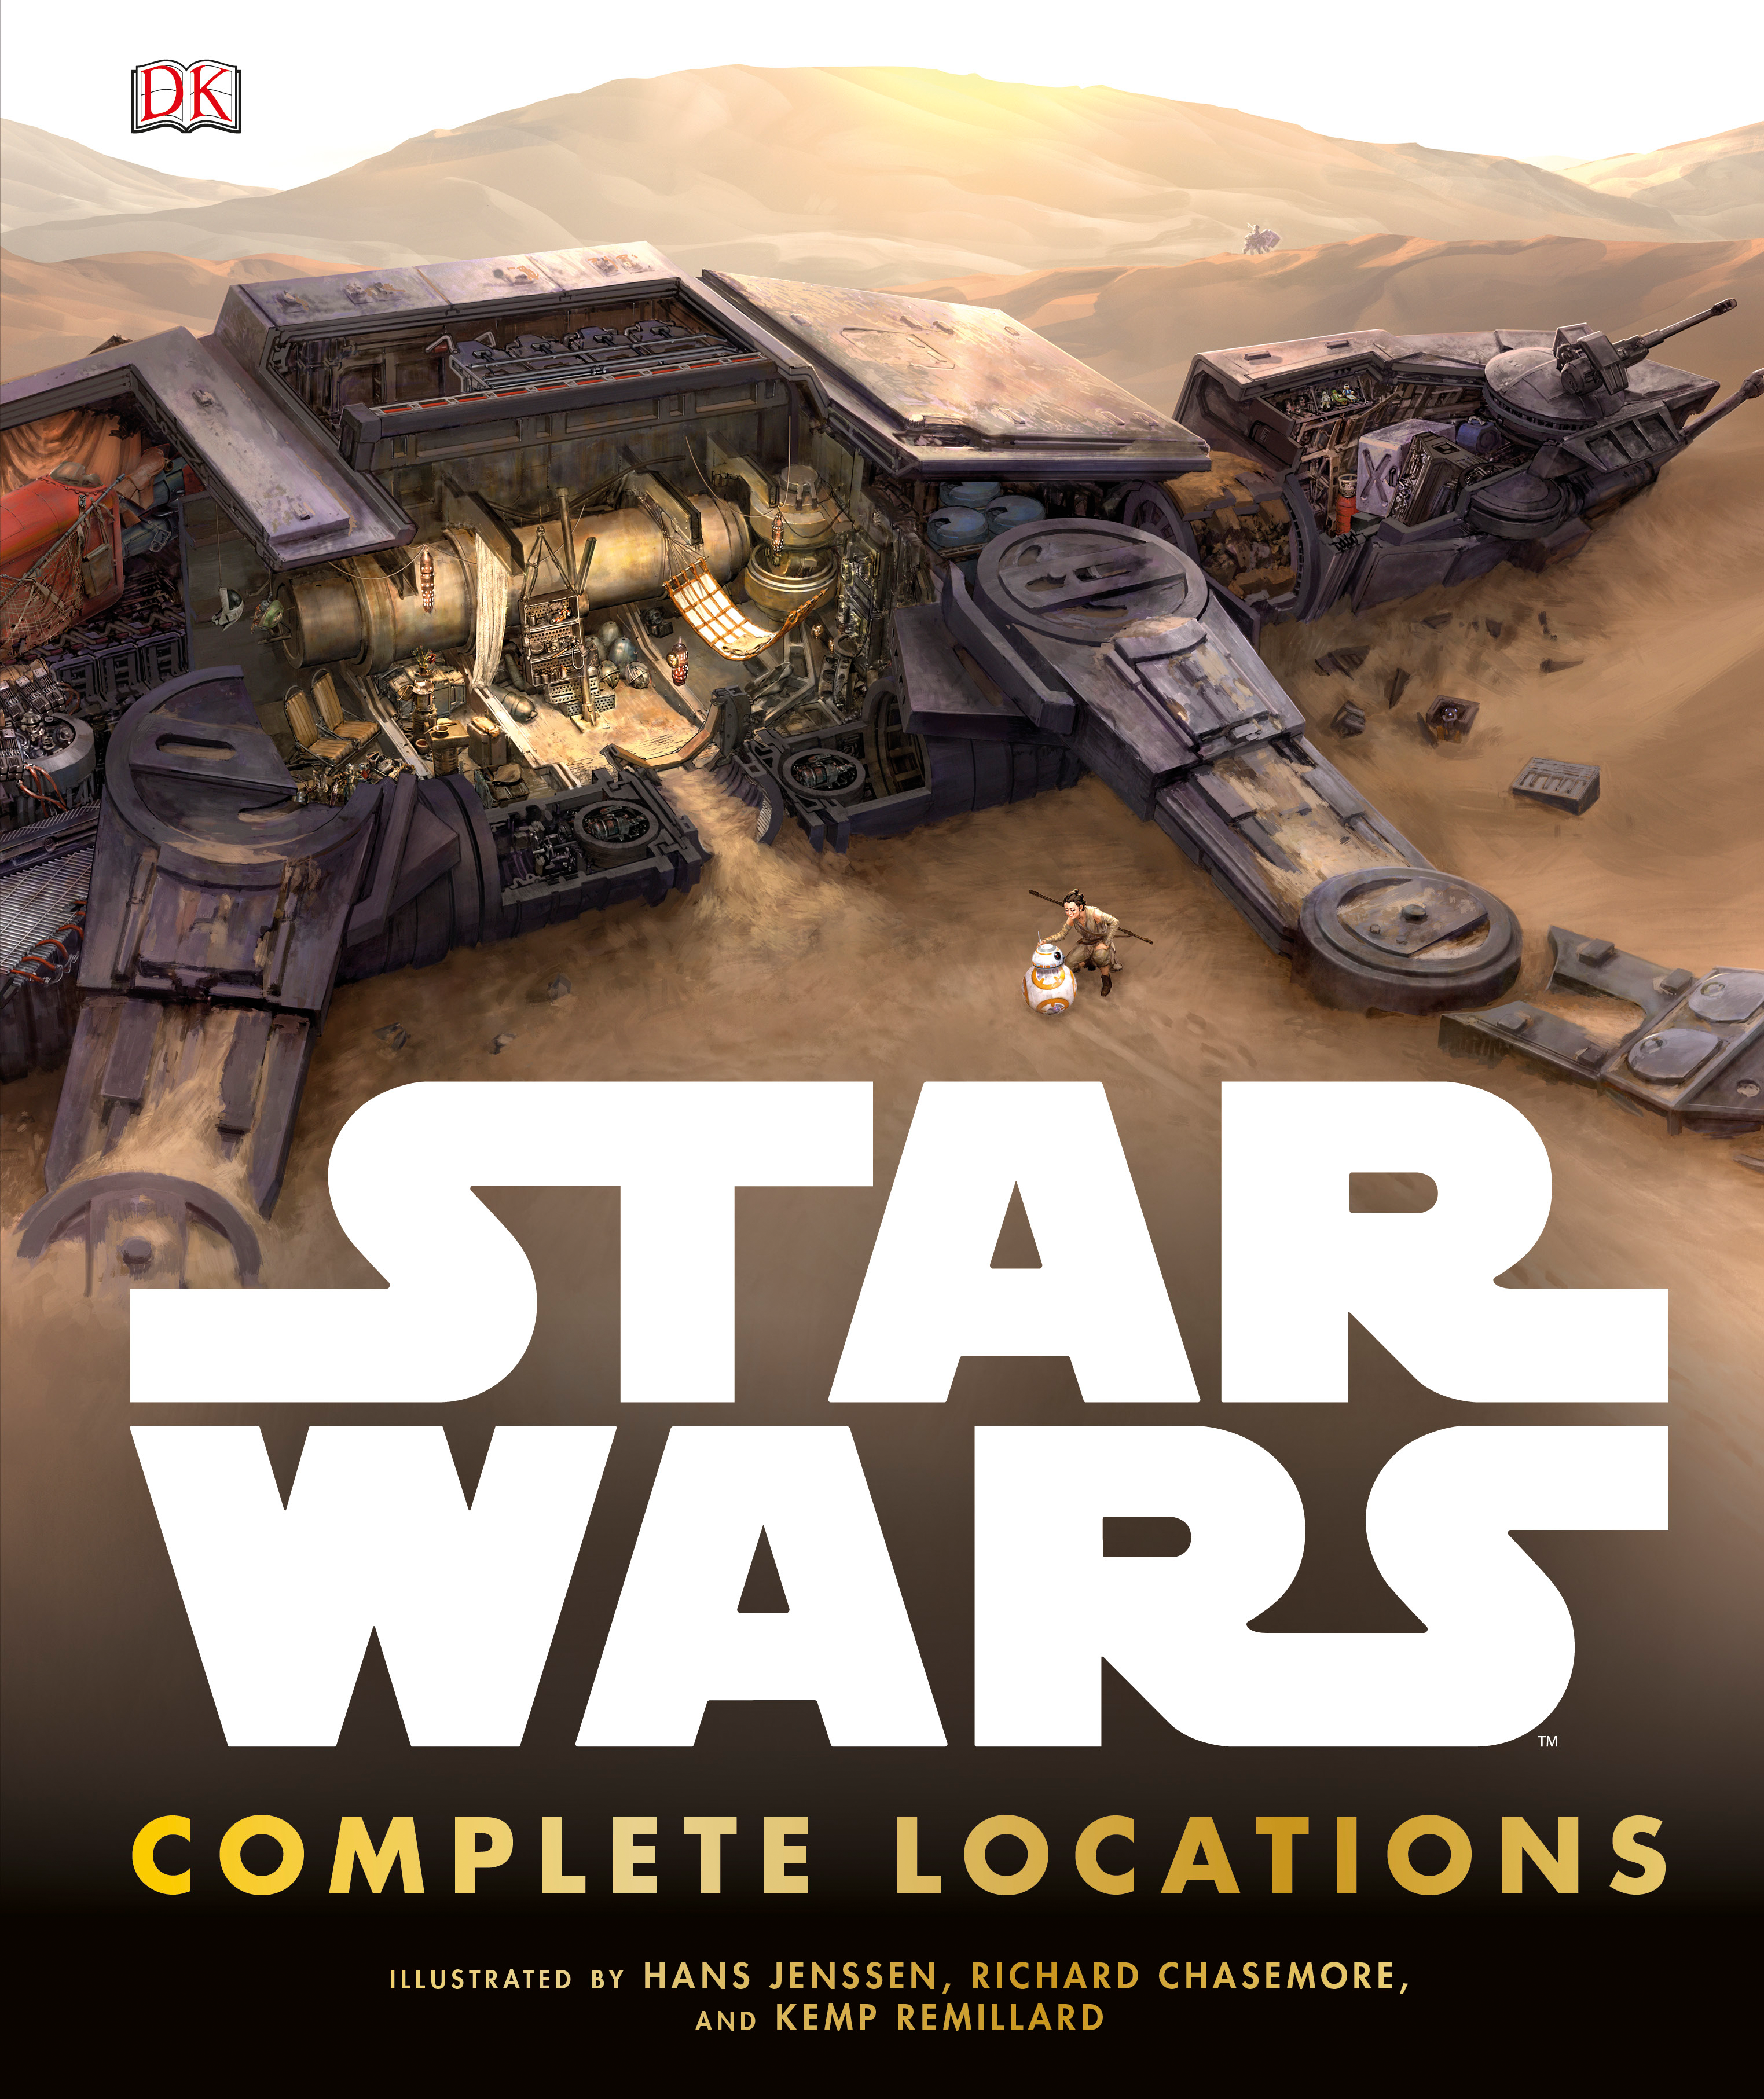 Star Wars Complete Locations 2016.png